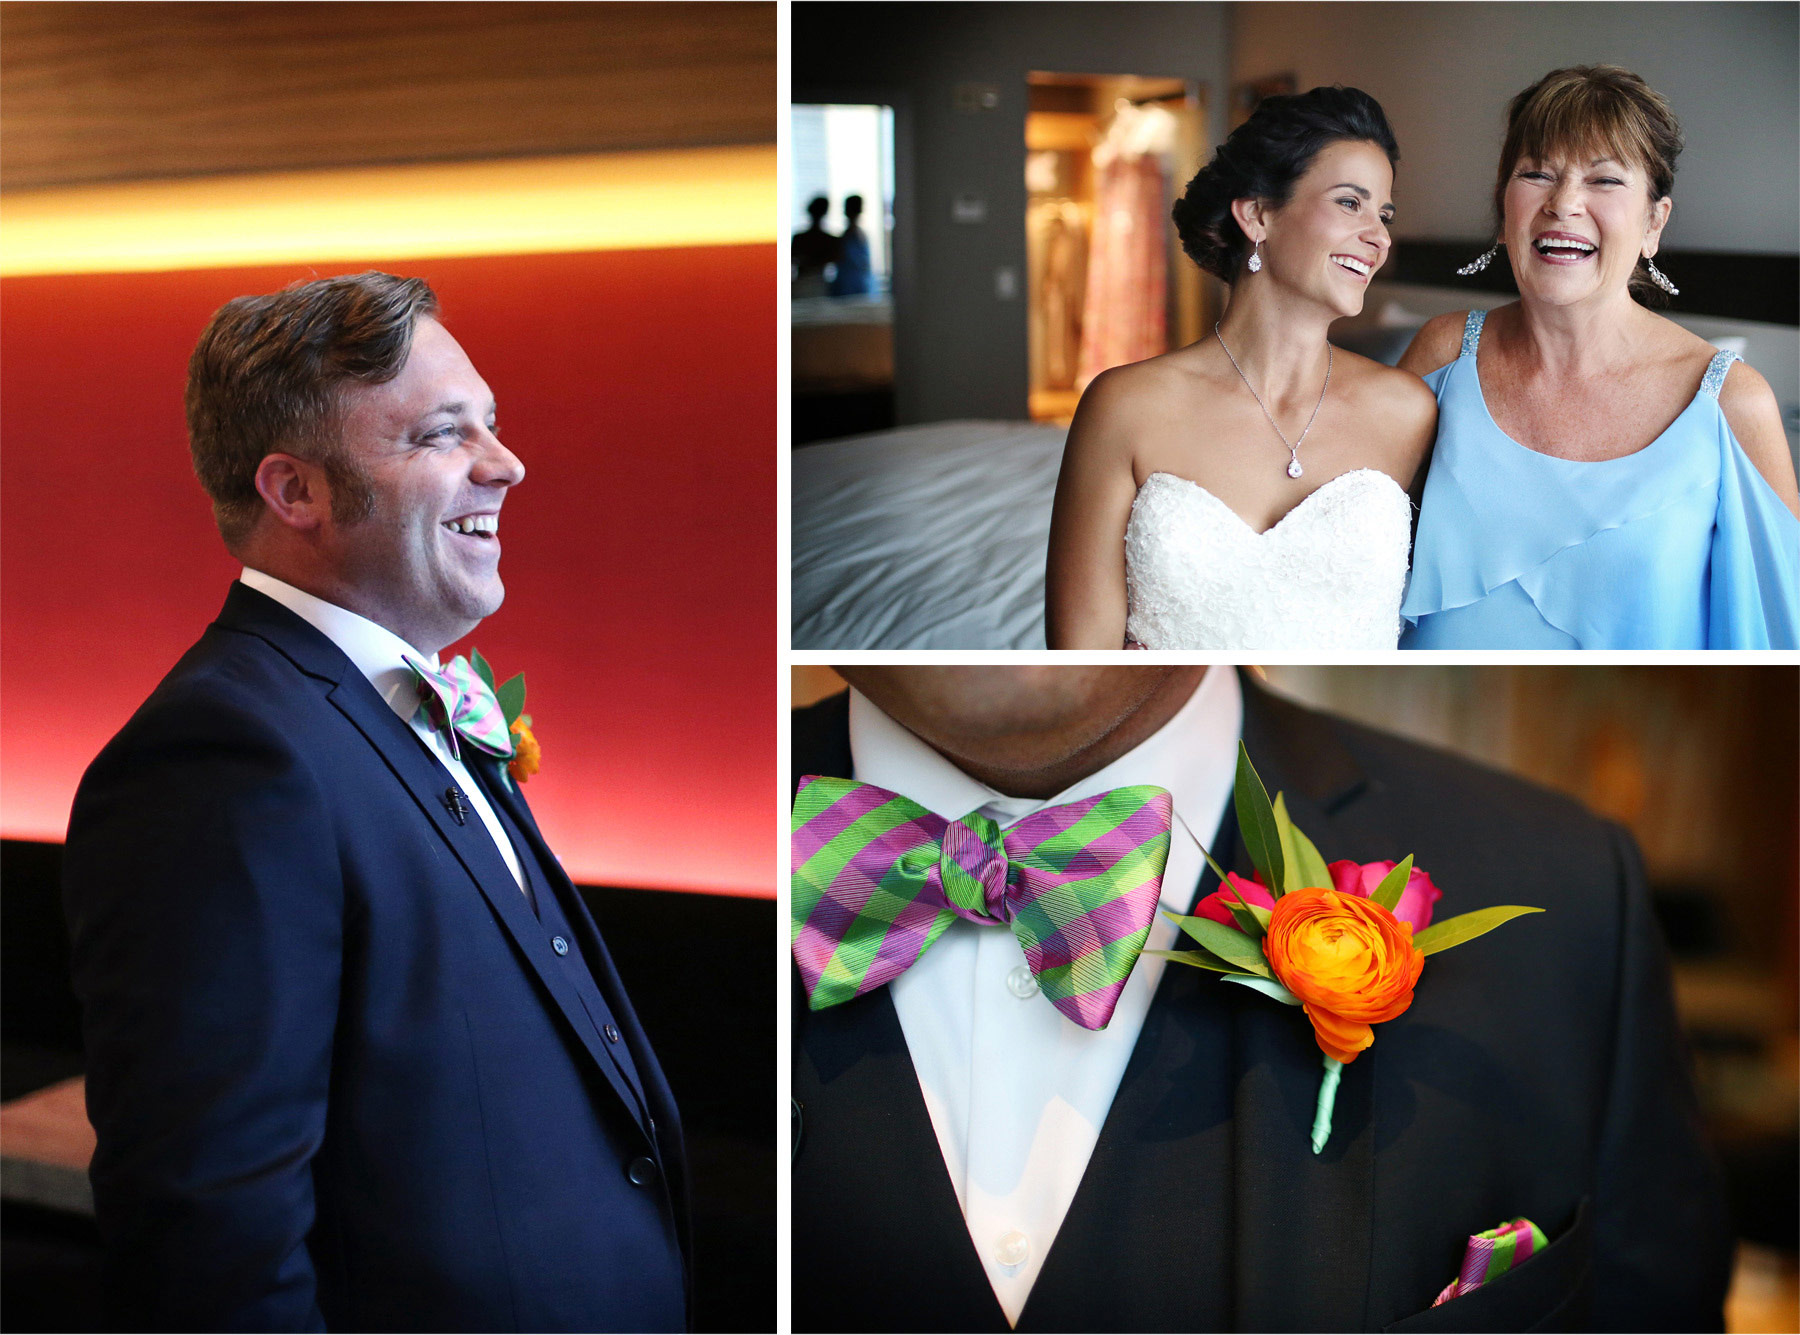 04-Minneapolis-Minnesota-Wedding-Photographer-by-Andrew-Vick-Photography-Summer-Loews-Hotel-Bride-Mother-Parents-Groom-Bowtie-Flowers-Lindsay-and-Dustin.jpg